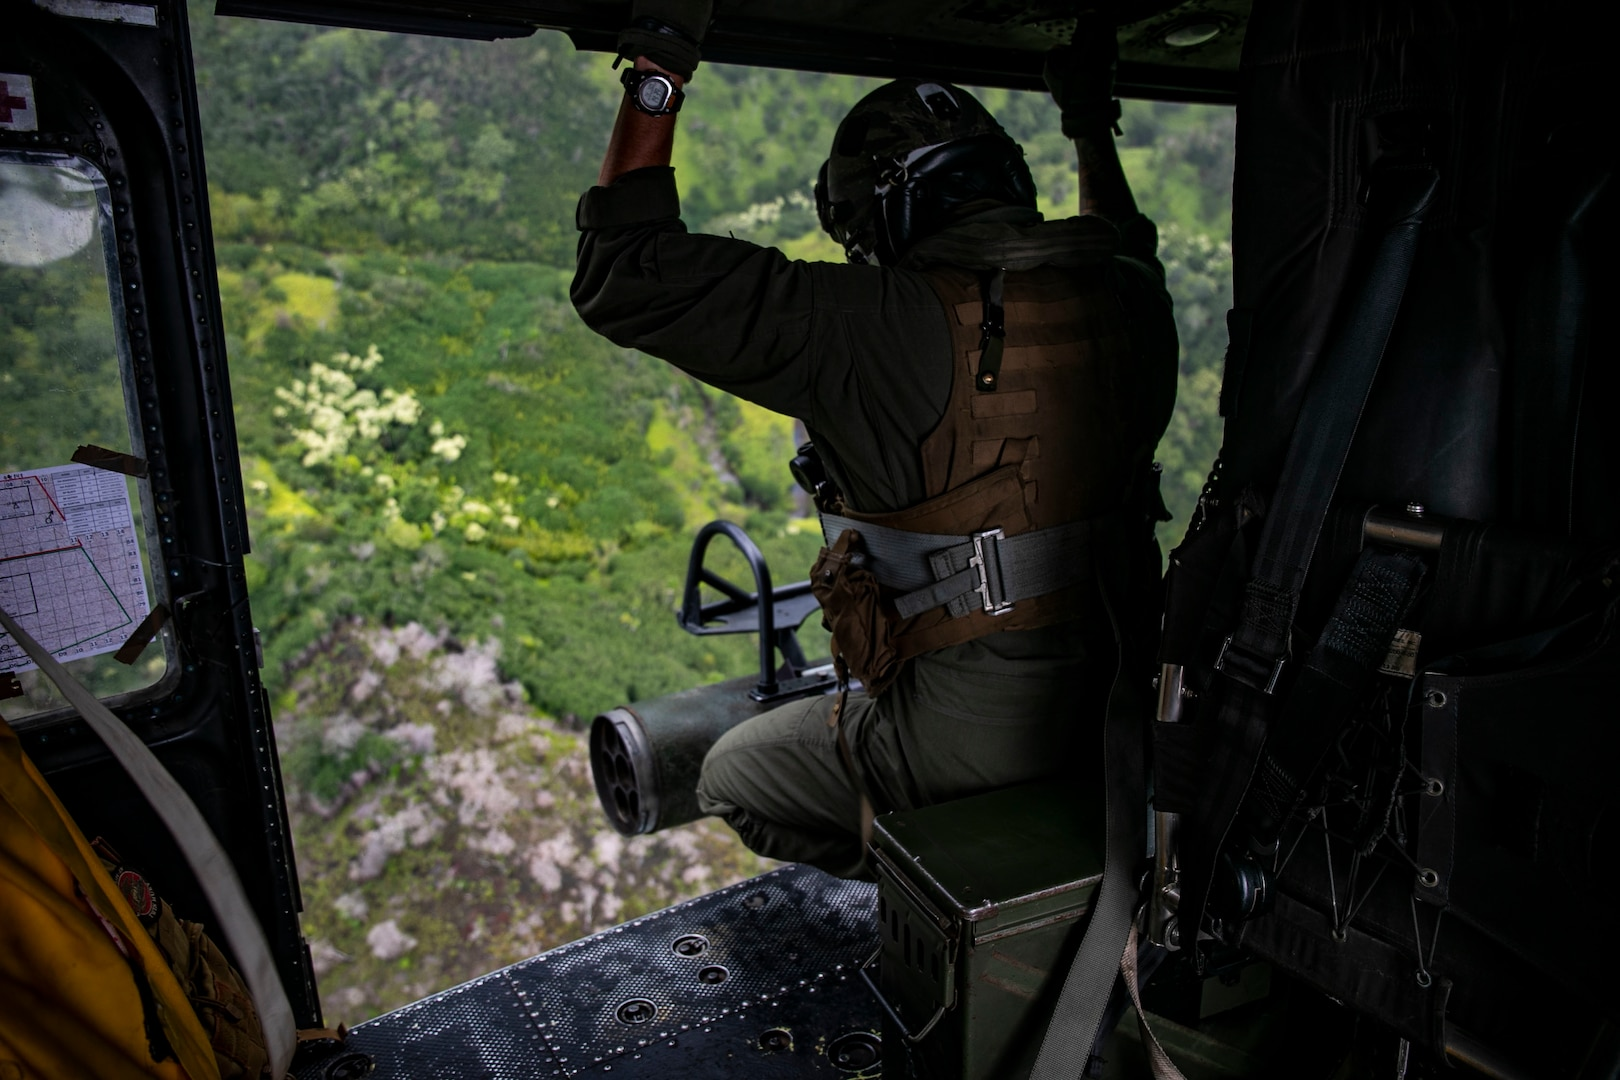 HMLA-367, U.S. Army 25th Infantry Div. conduct integrated exercise, MCBH